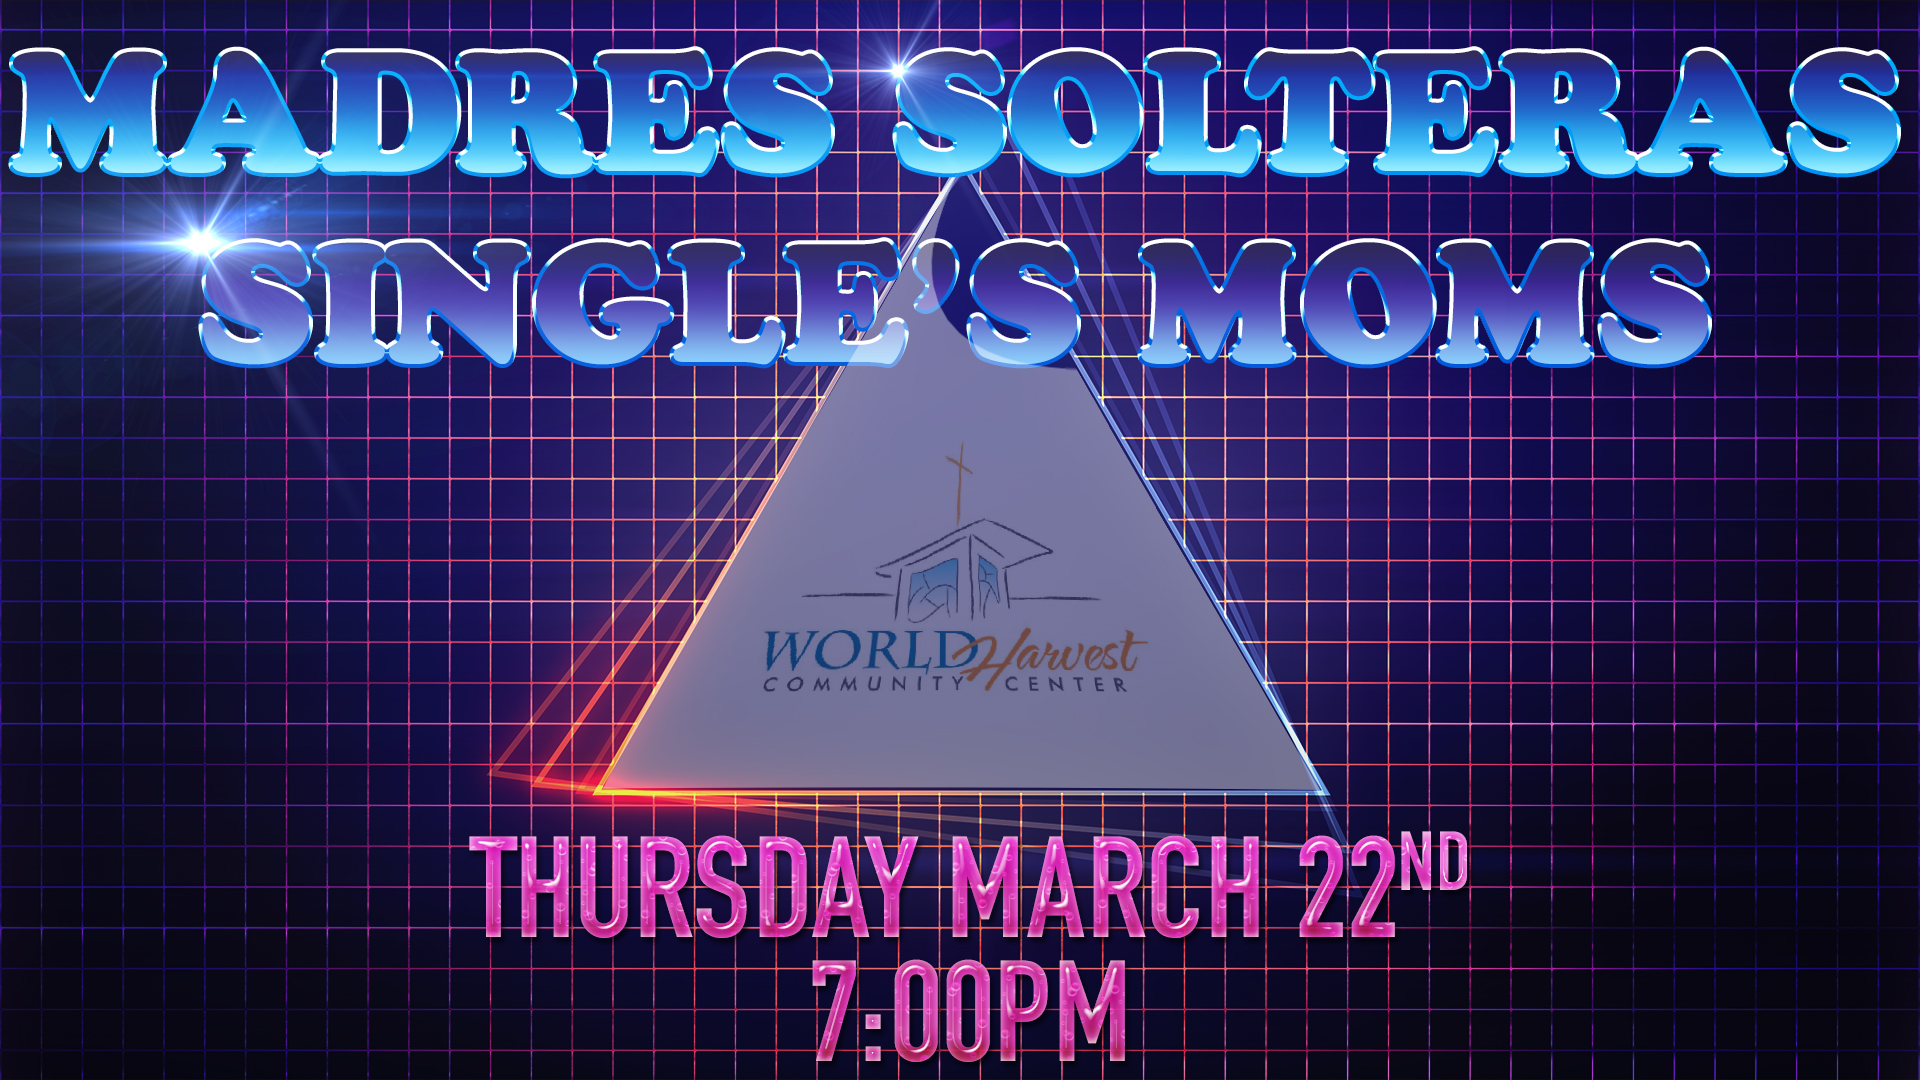 Singles Mom's Thursday March 22nd.